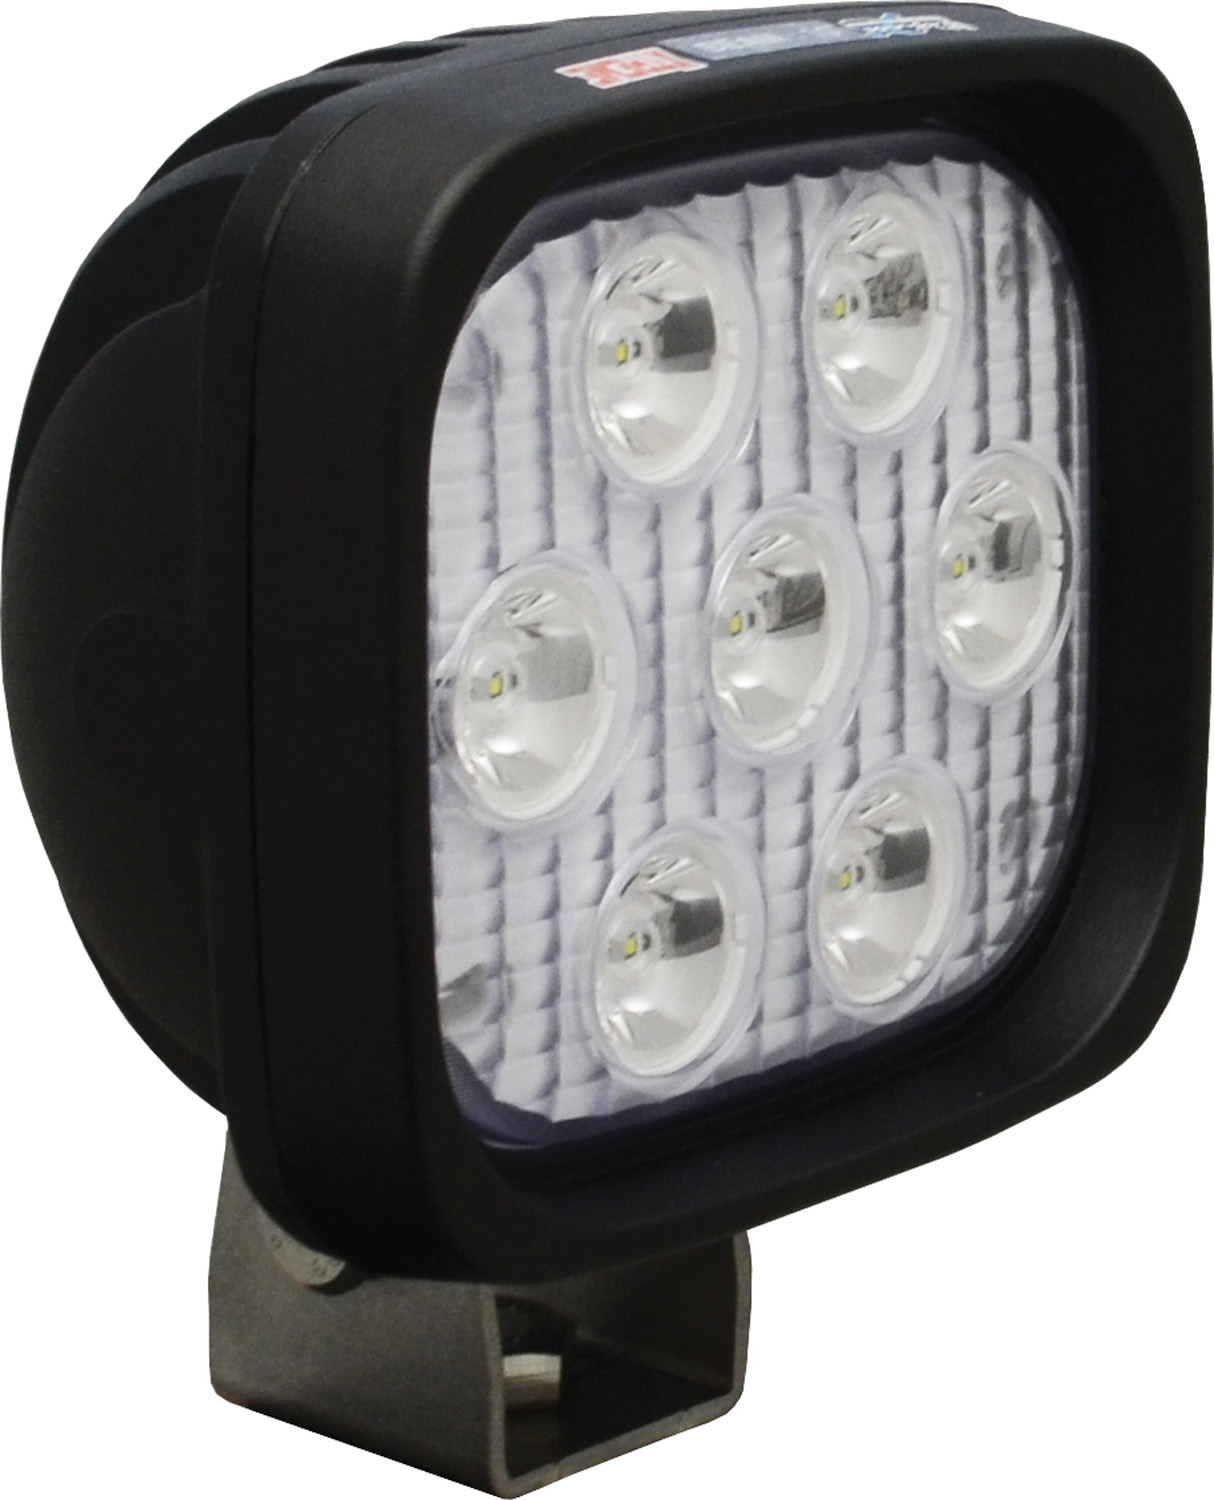 "4"" SQUARE UTILITY MARKET XTREME BLACK 7 5W LED'S 10ç NARROW"